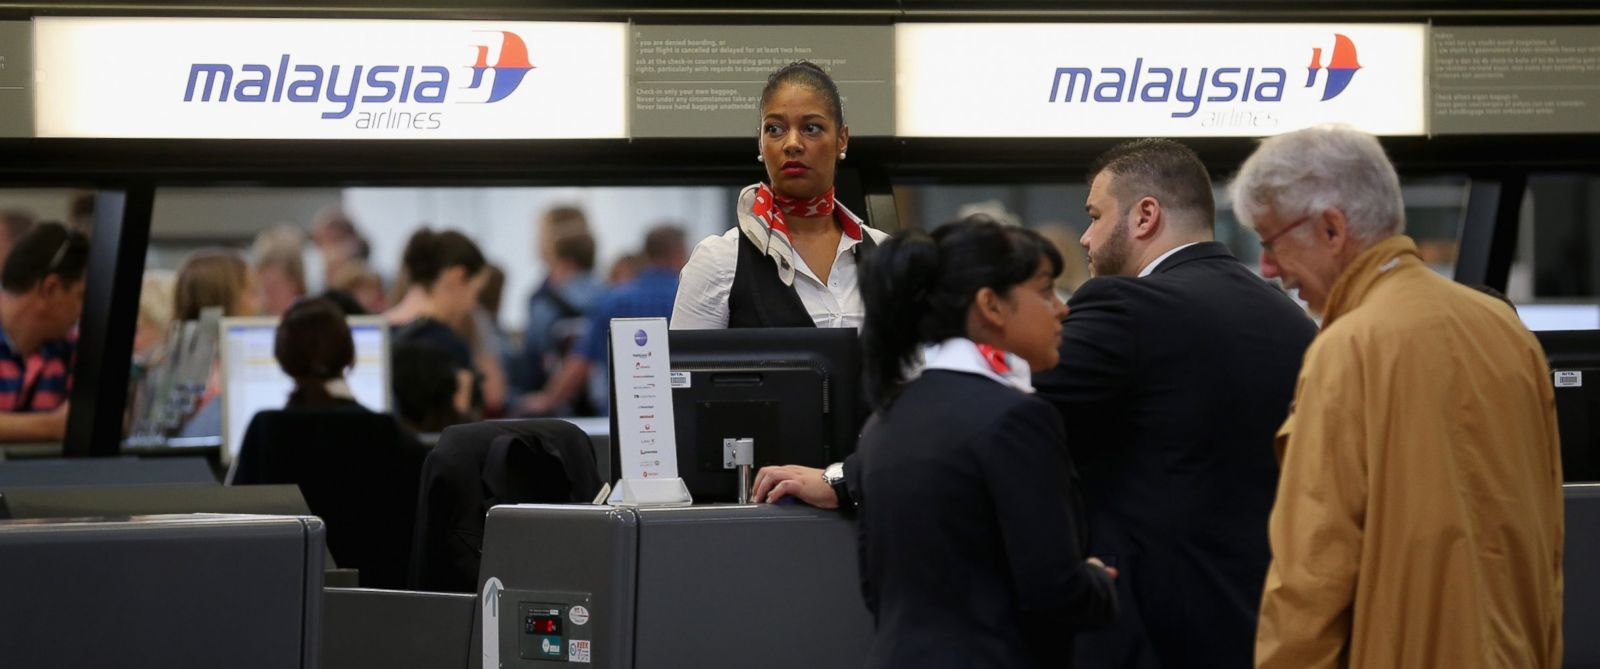 PHOTO: Passengers check in for an Air Malaysia flight at Schiphol Airport on July 18, 2014 in Amsterdam, Netherlands.